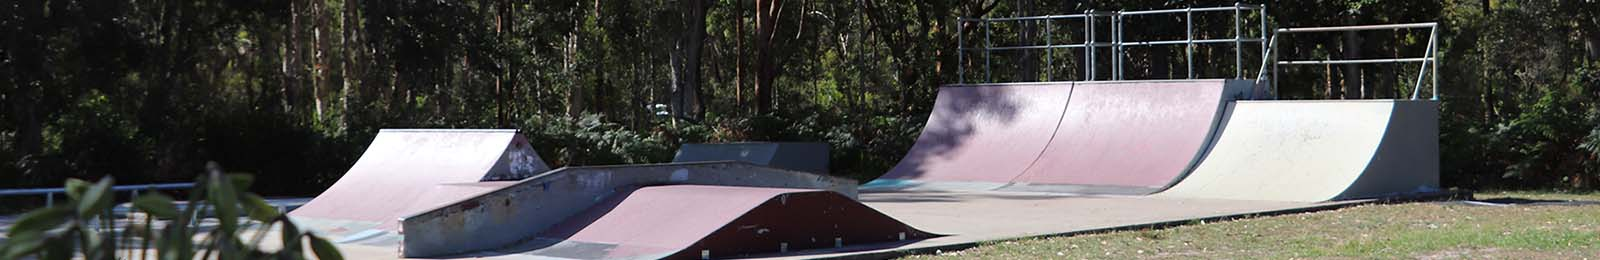 Mallabula skate park top